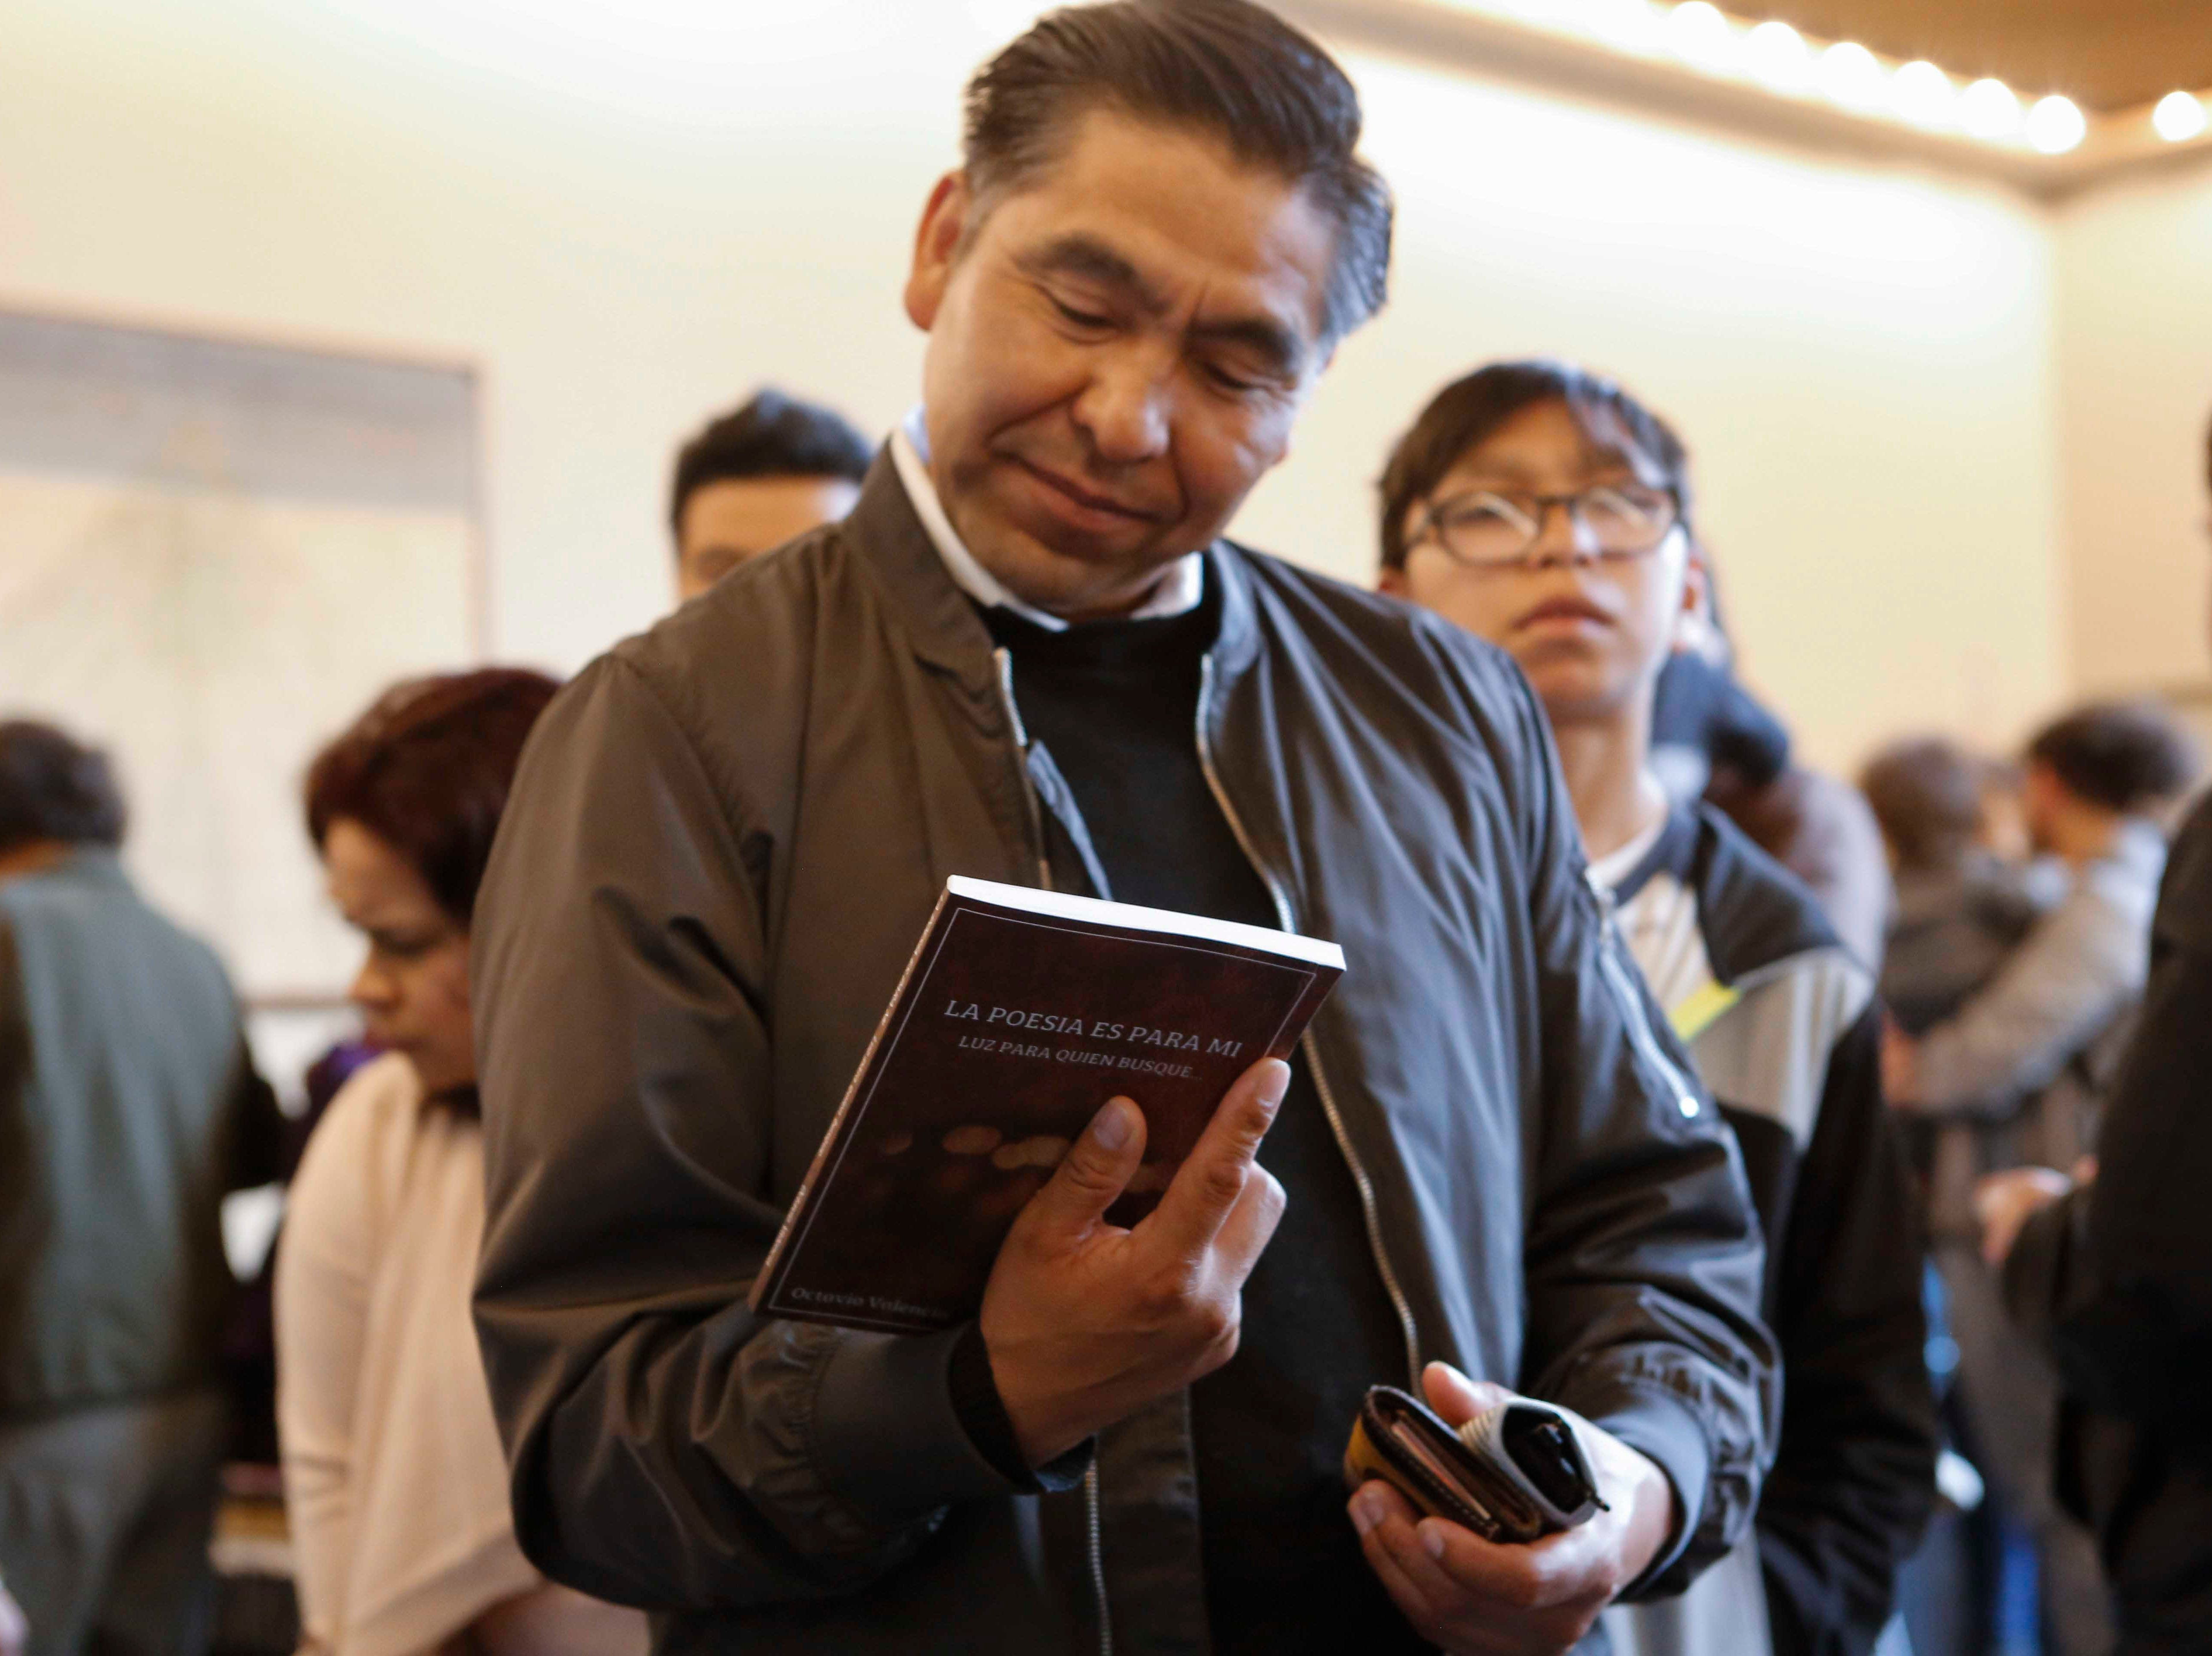 An attendee reads the back of a book during the 12th annual Noche Bohemia at Sherwood Hall on Saturday, April 27, 2019 in Salinas, Calif.